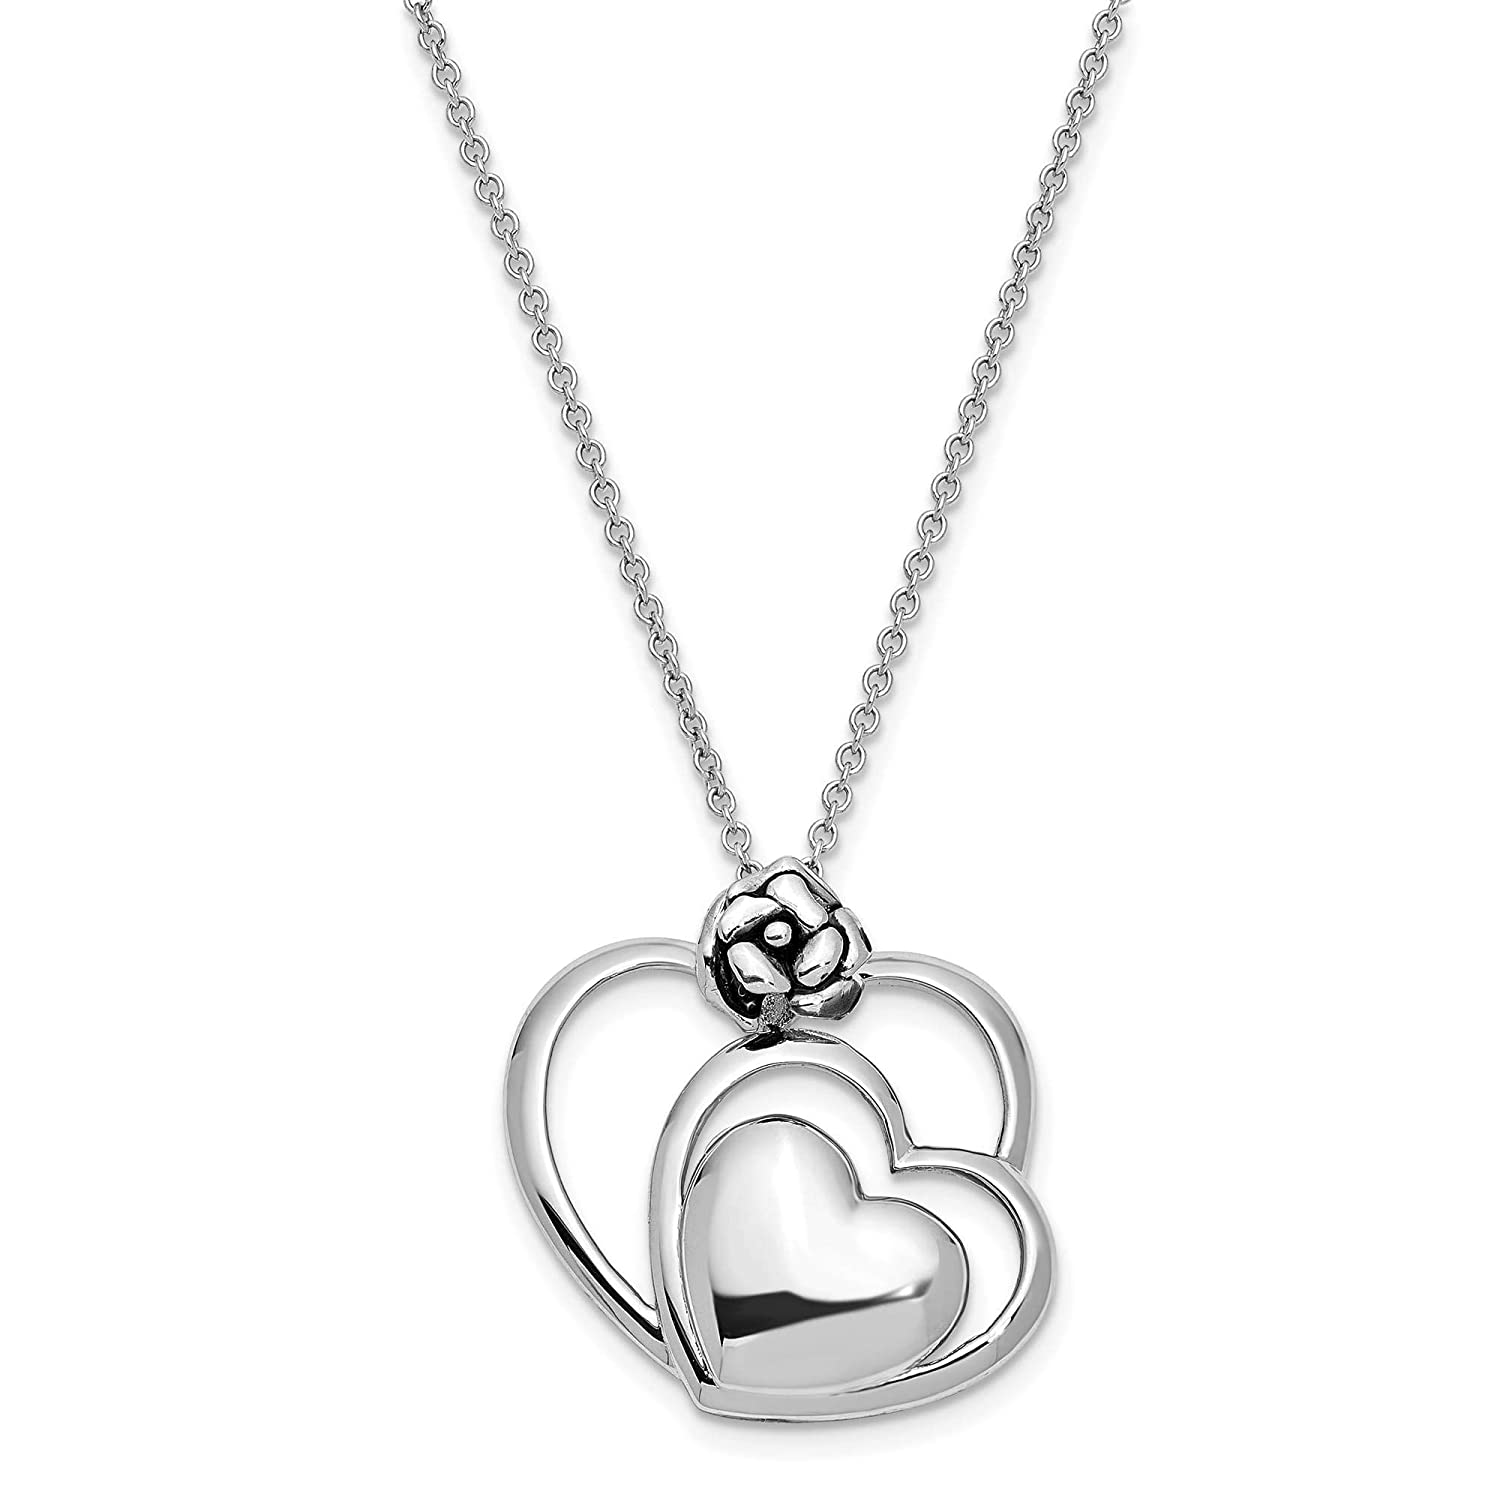 Sterling Silver Polished /& Antiqued Thank You My Grand Daughter Necklace 18 by Sentimental Expressions